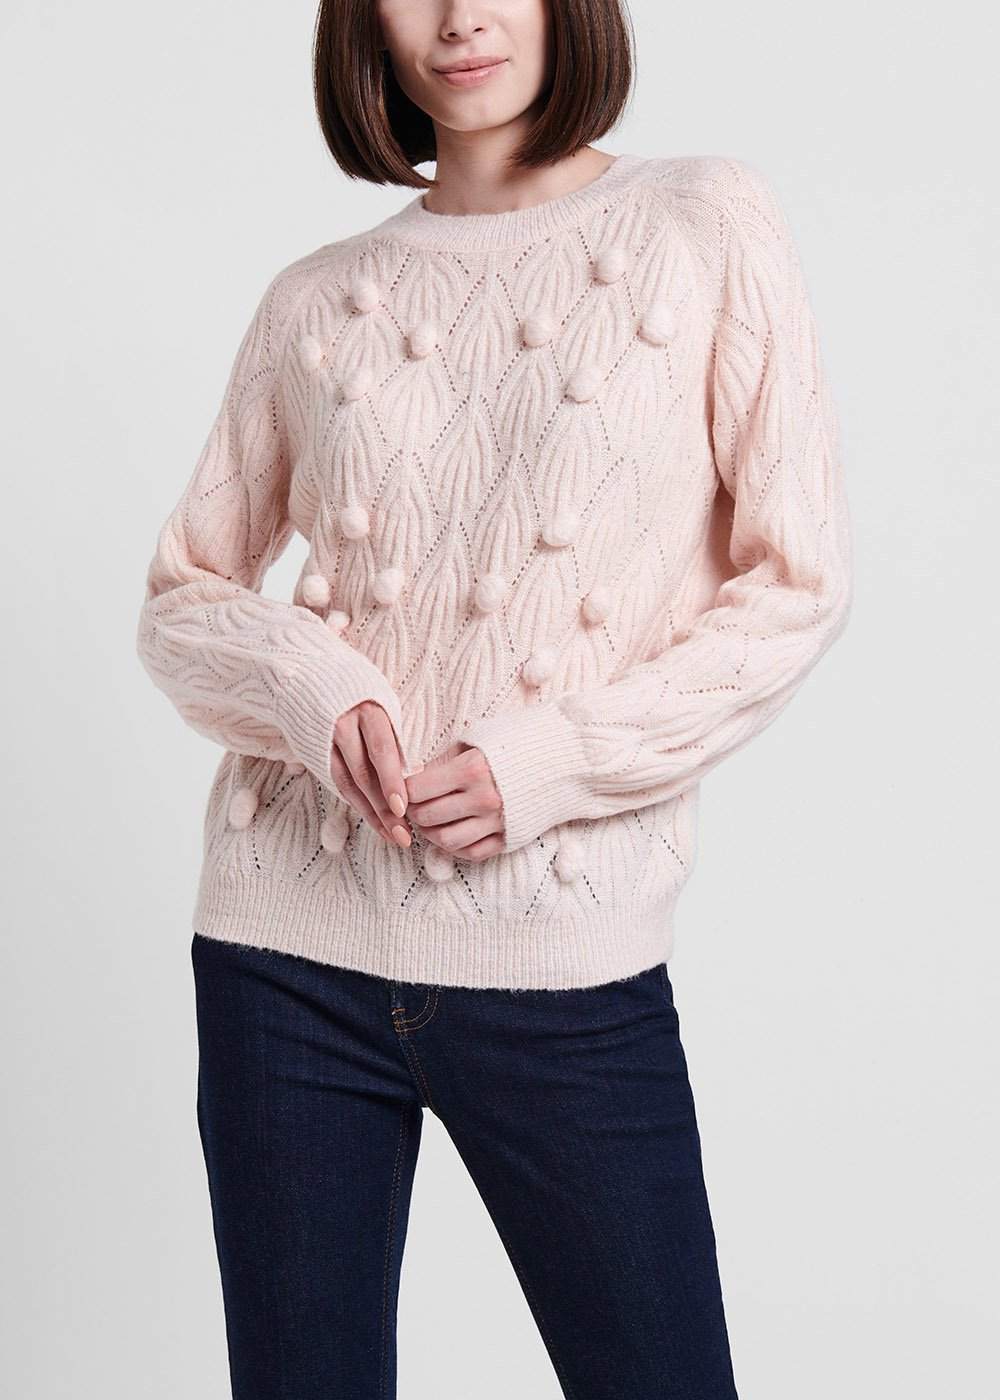 Sepia-coloured crew-neck sweater - Sepia - Woman